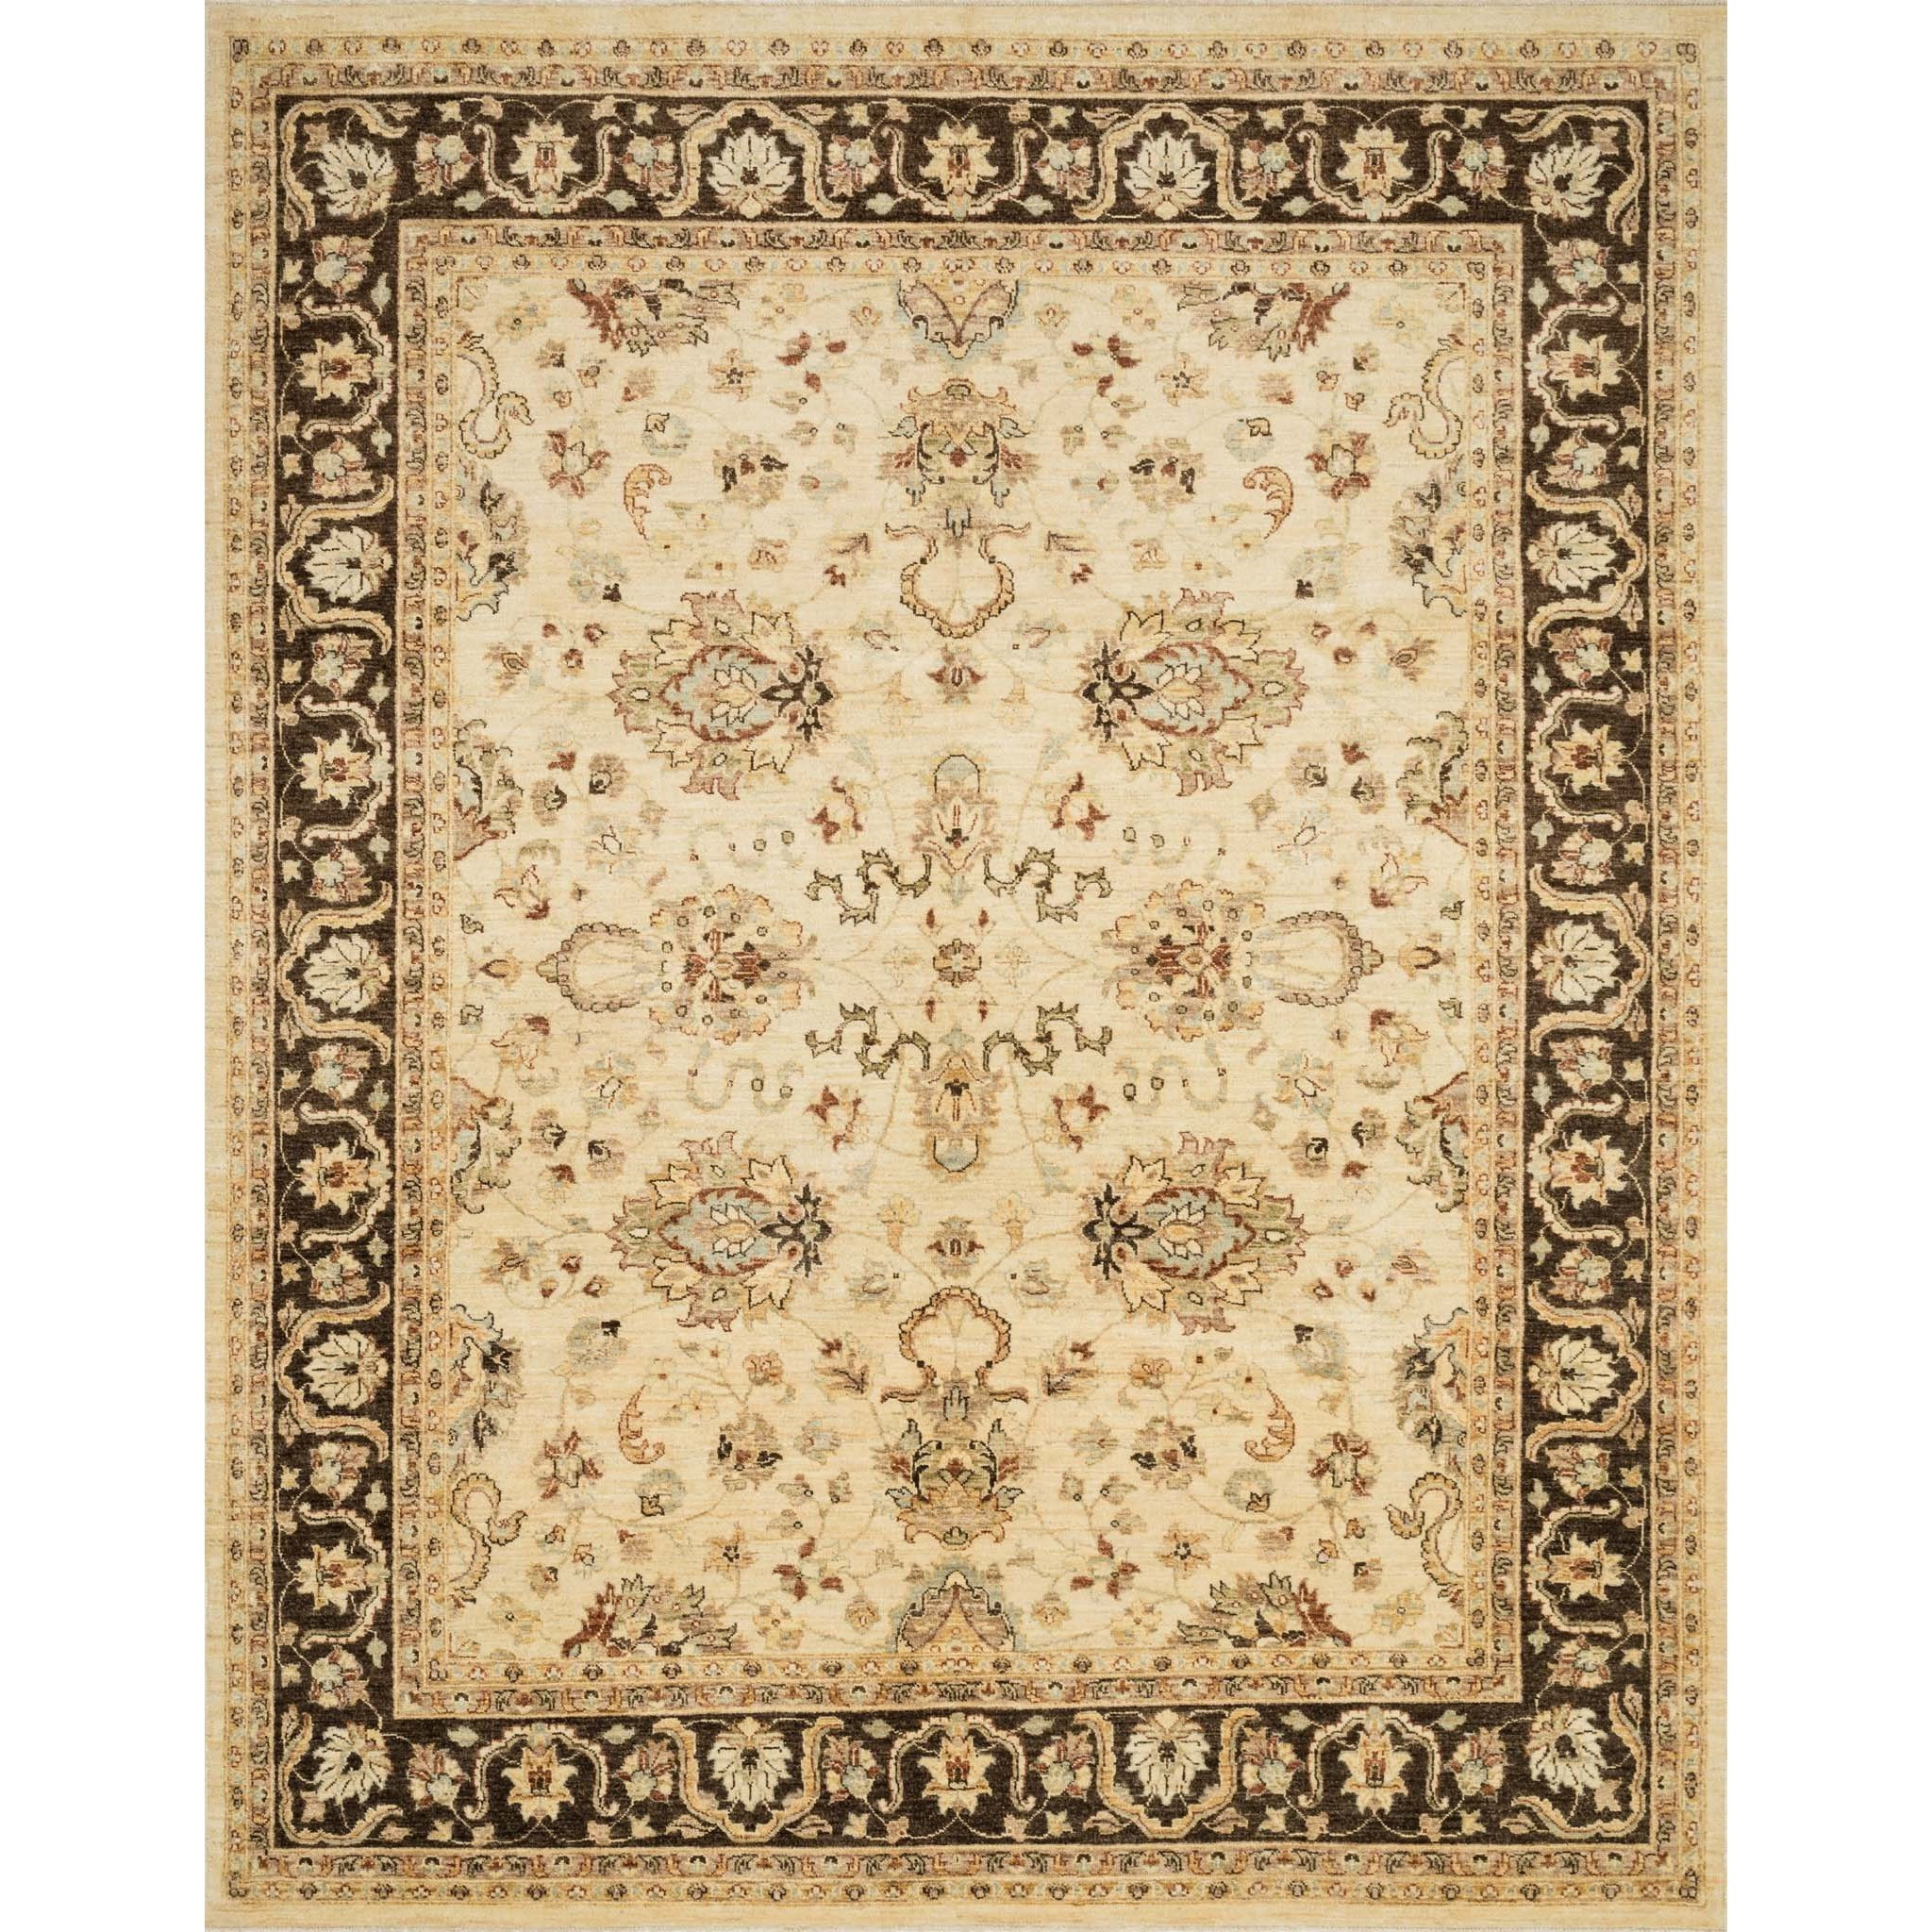 """Majestic 8'-6"""" x 11'-6"""" Area Rug by Loloi Rugs at Virginia Furniture Market"""